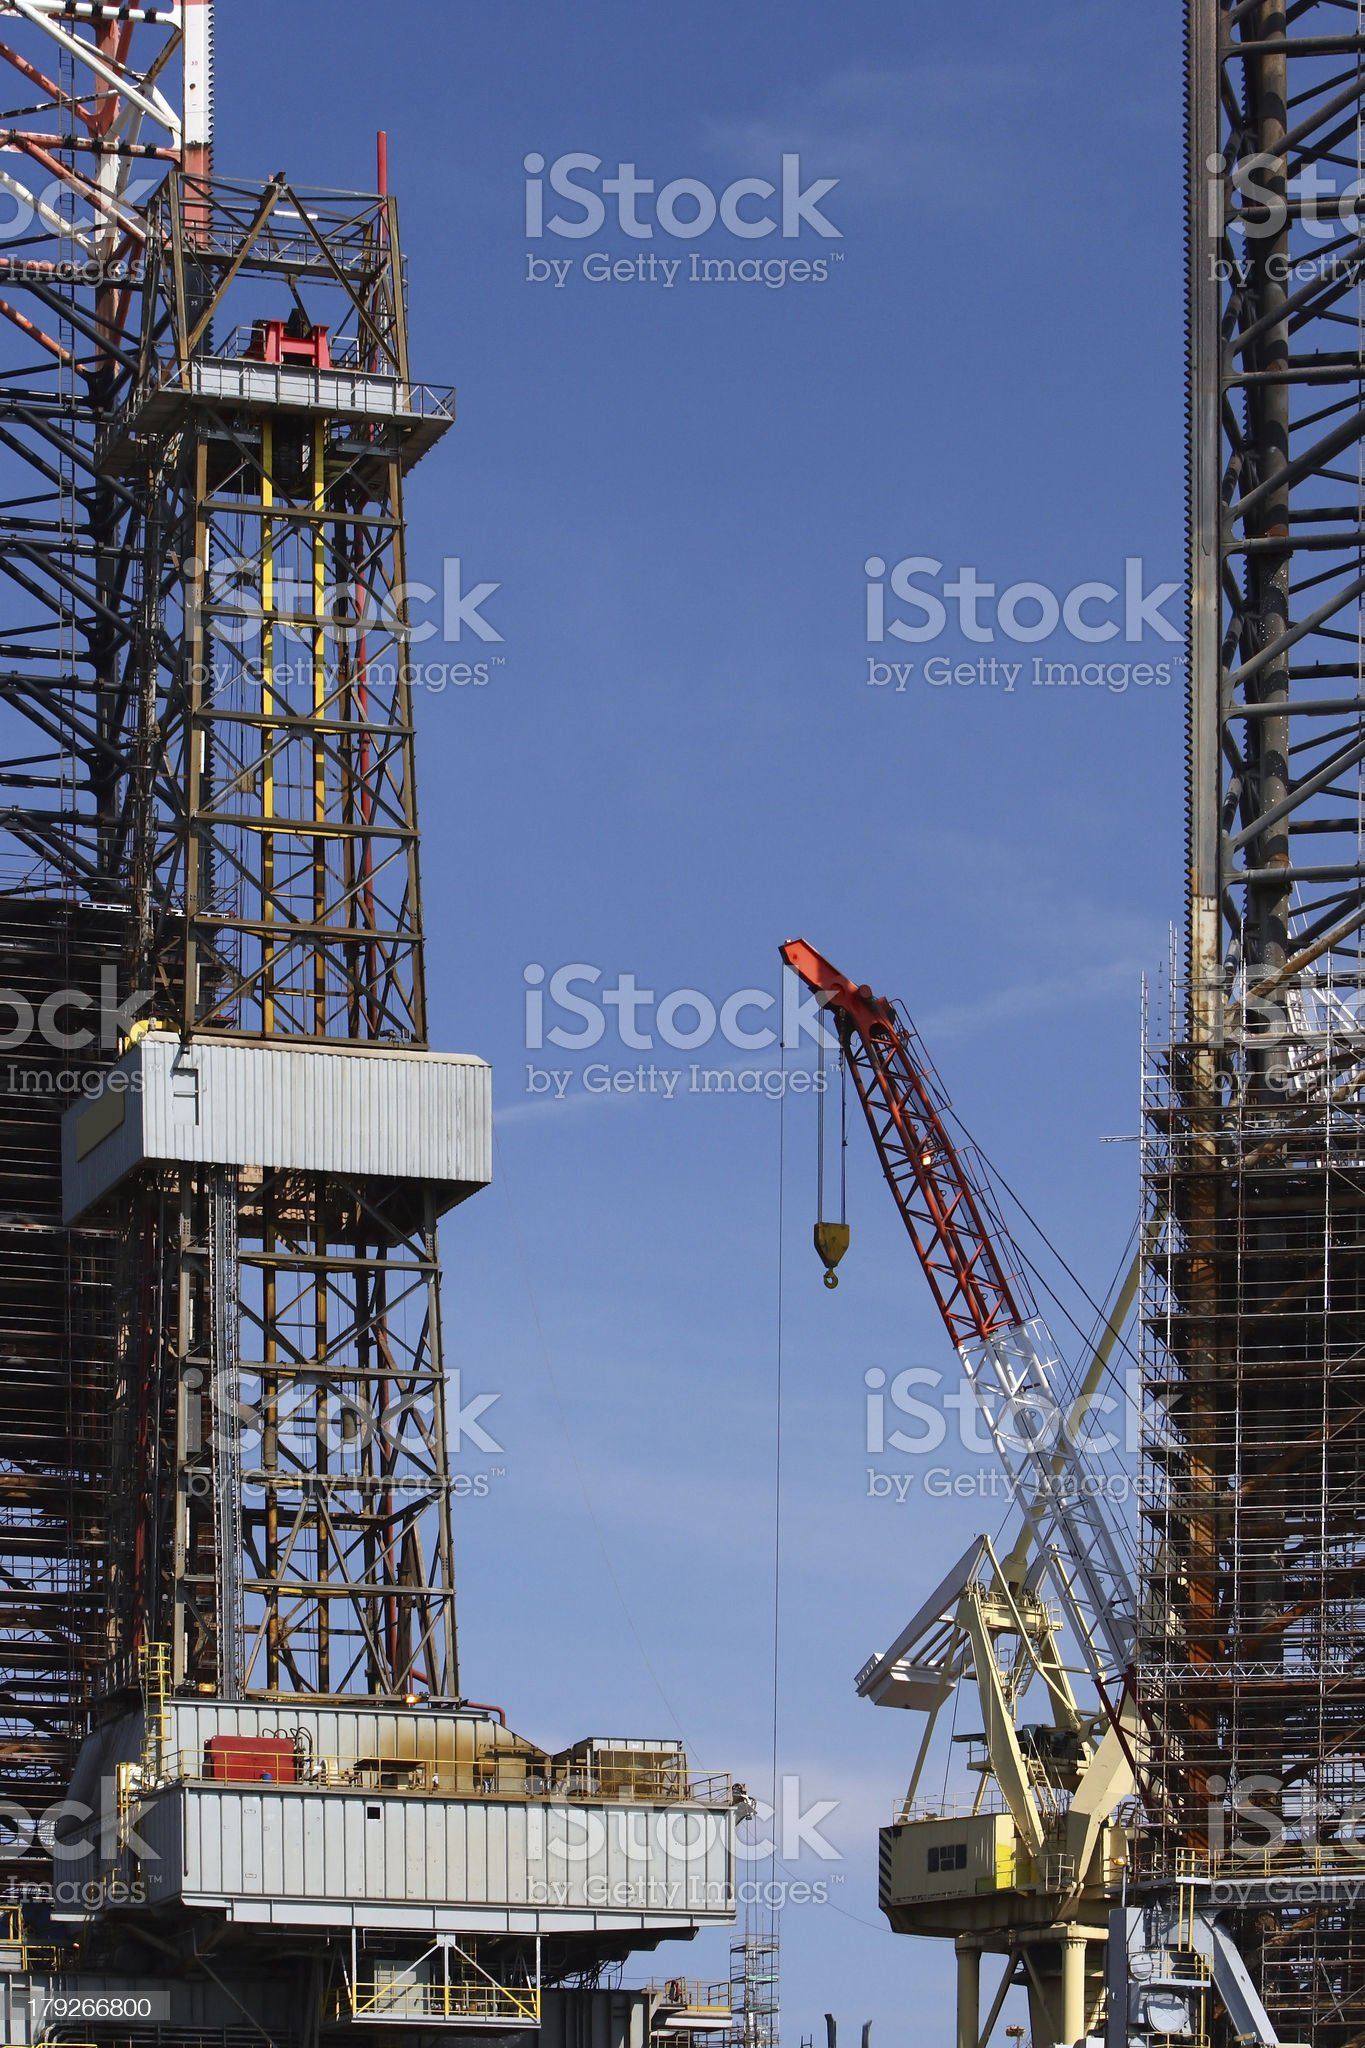 Oil Rig and red crane royalty-free stock photo